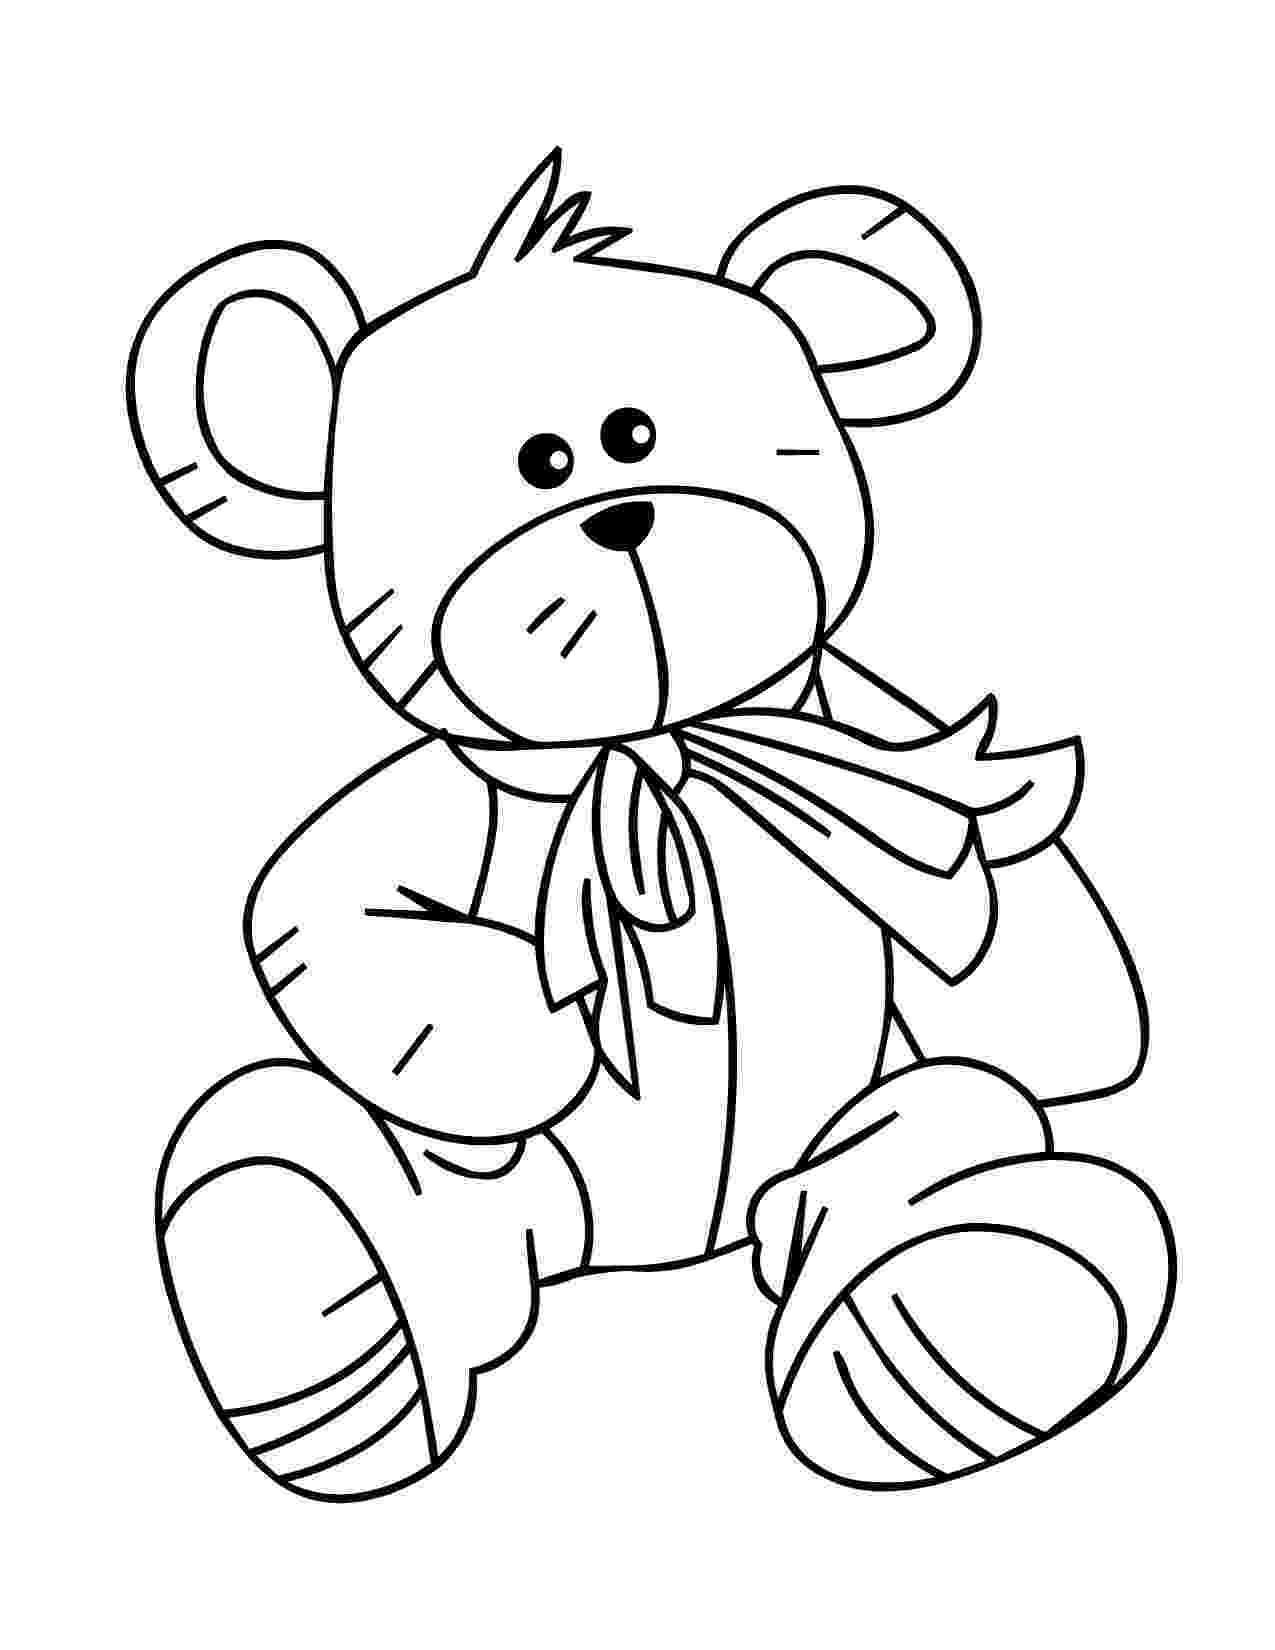 bear pictures to color free printable bear coloring pages for kids color bear pictures to